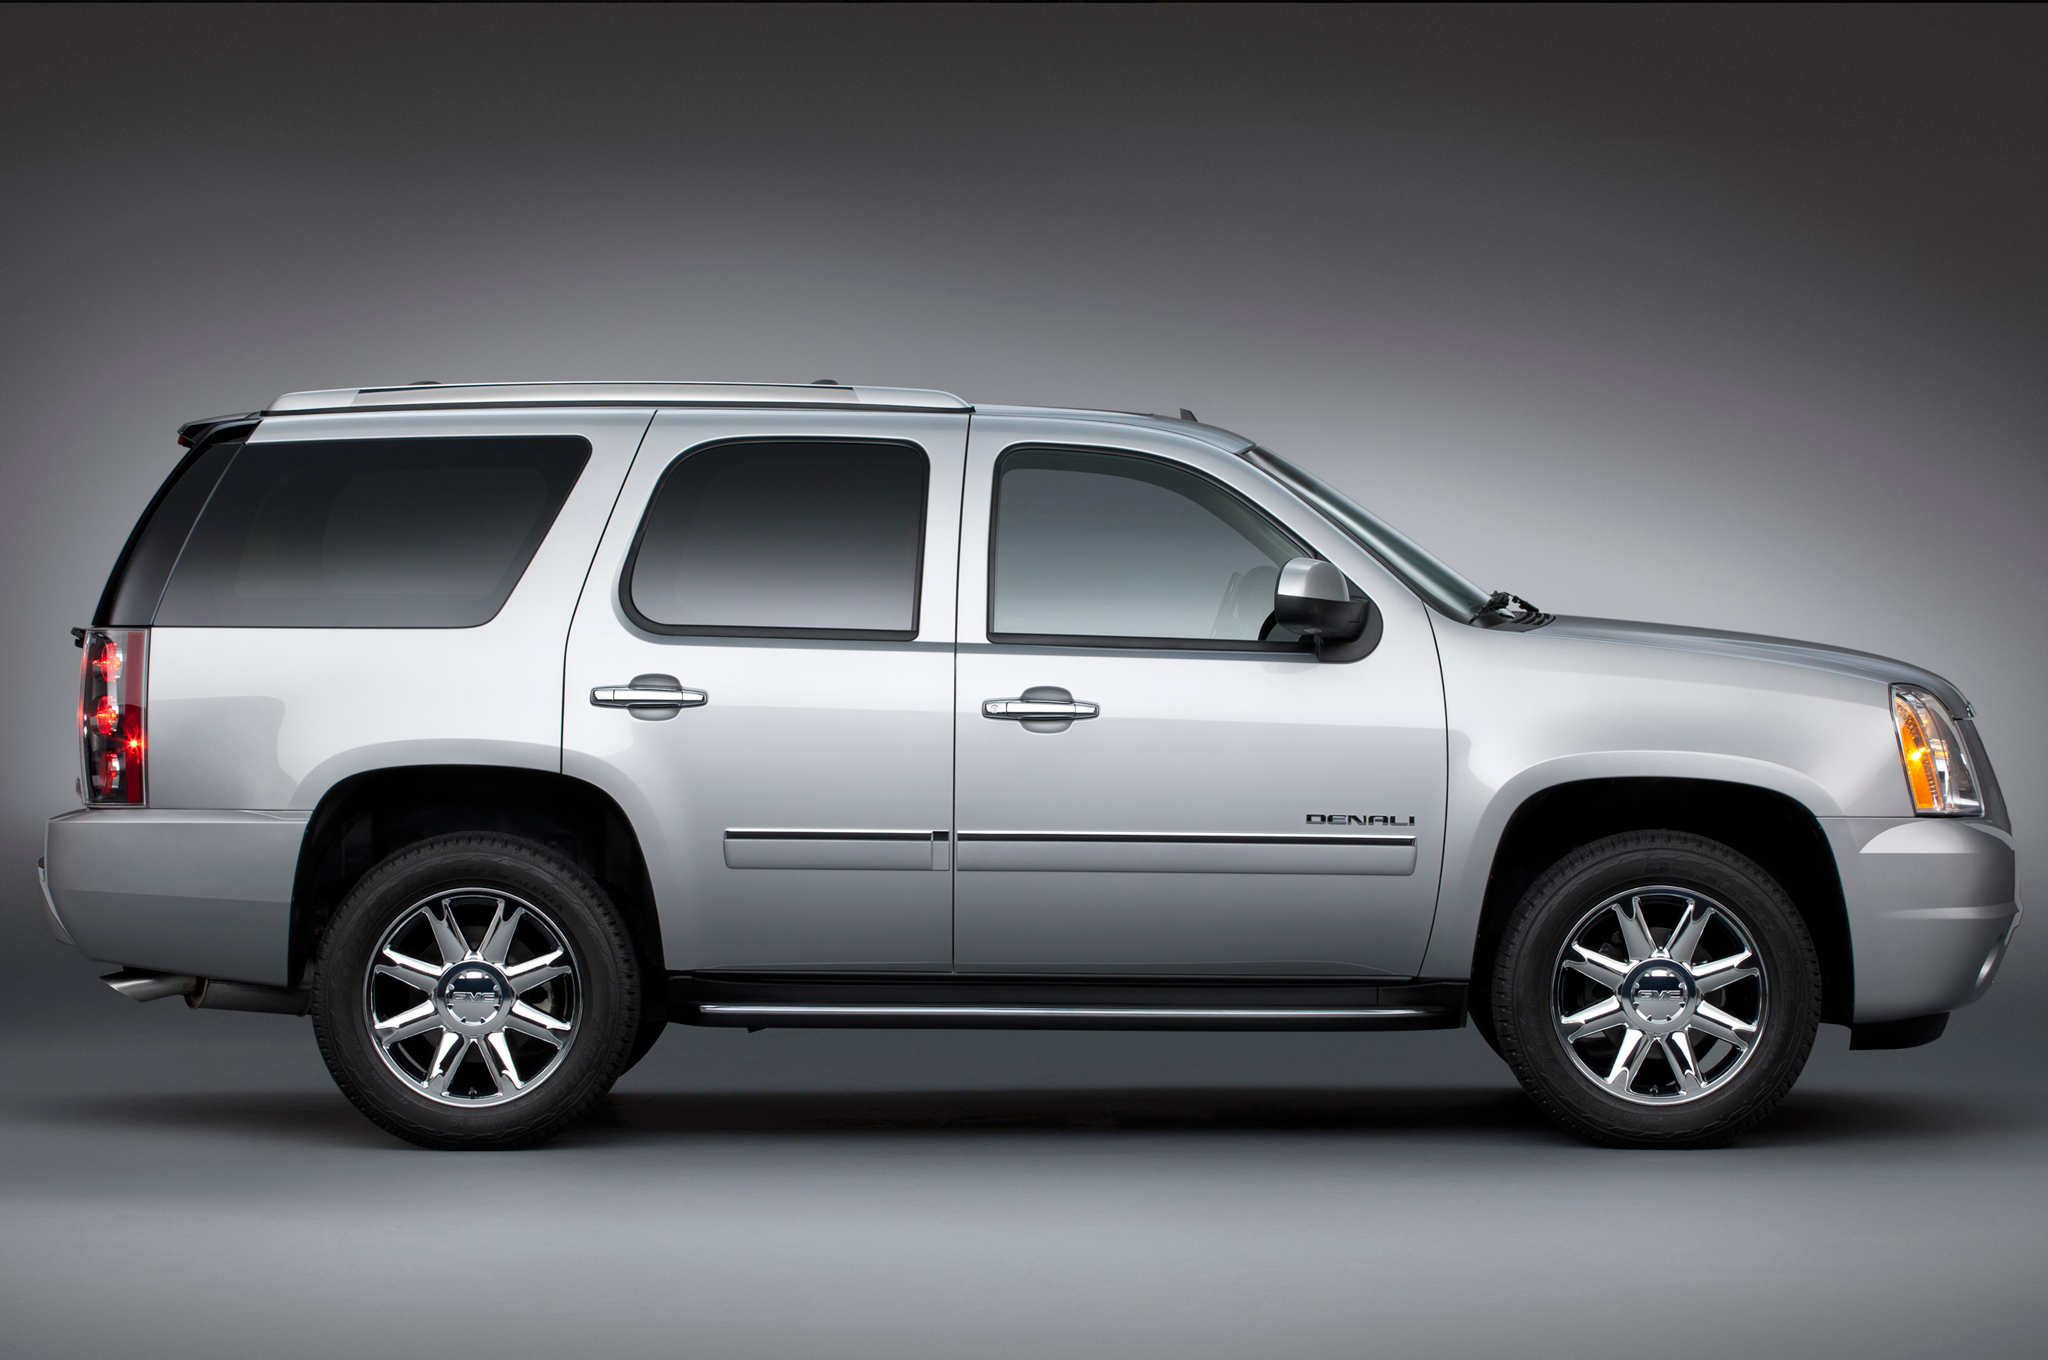 denali gallery share download terrain best gmc image and